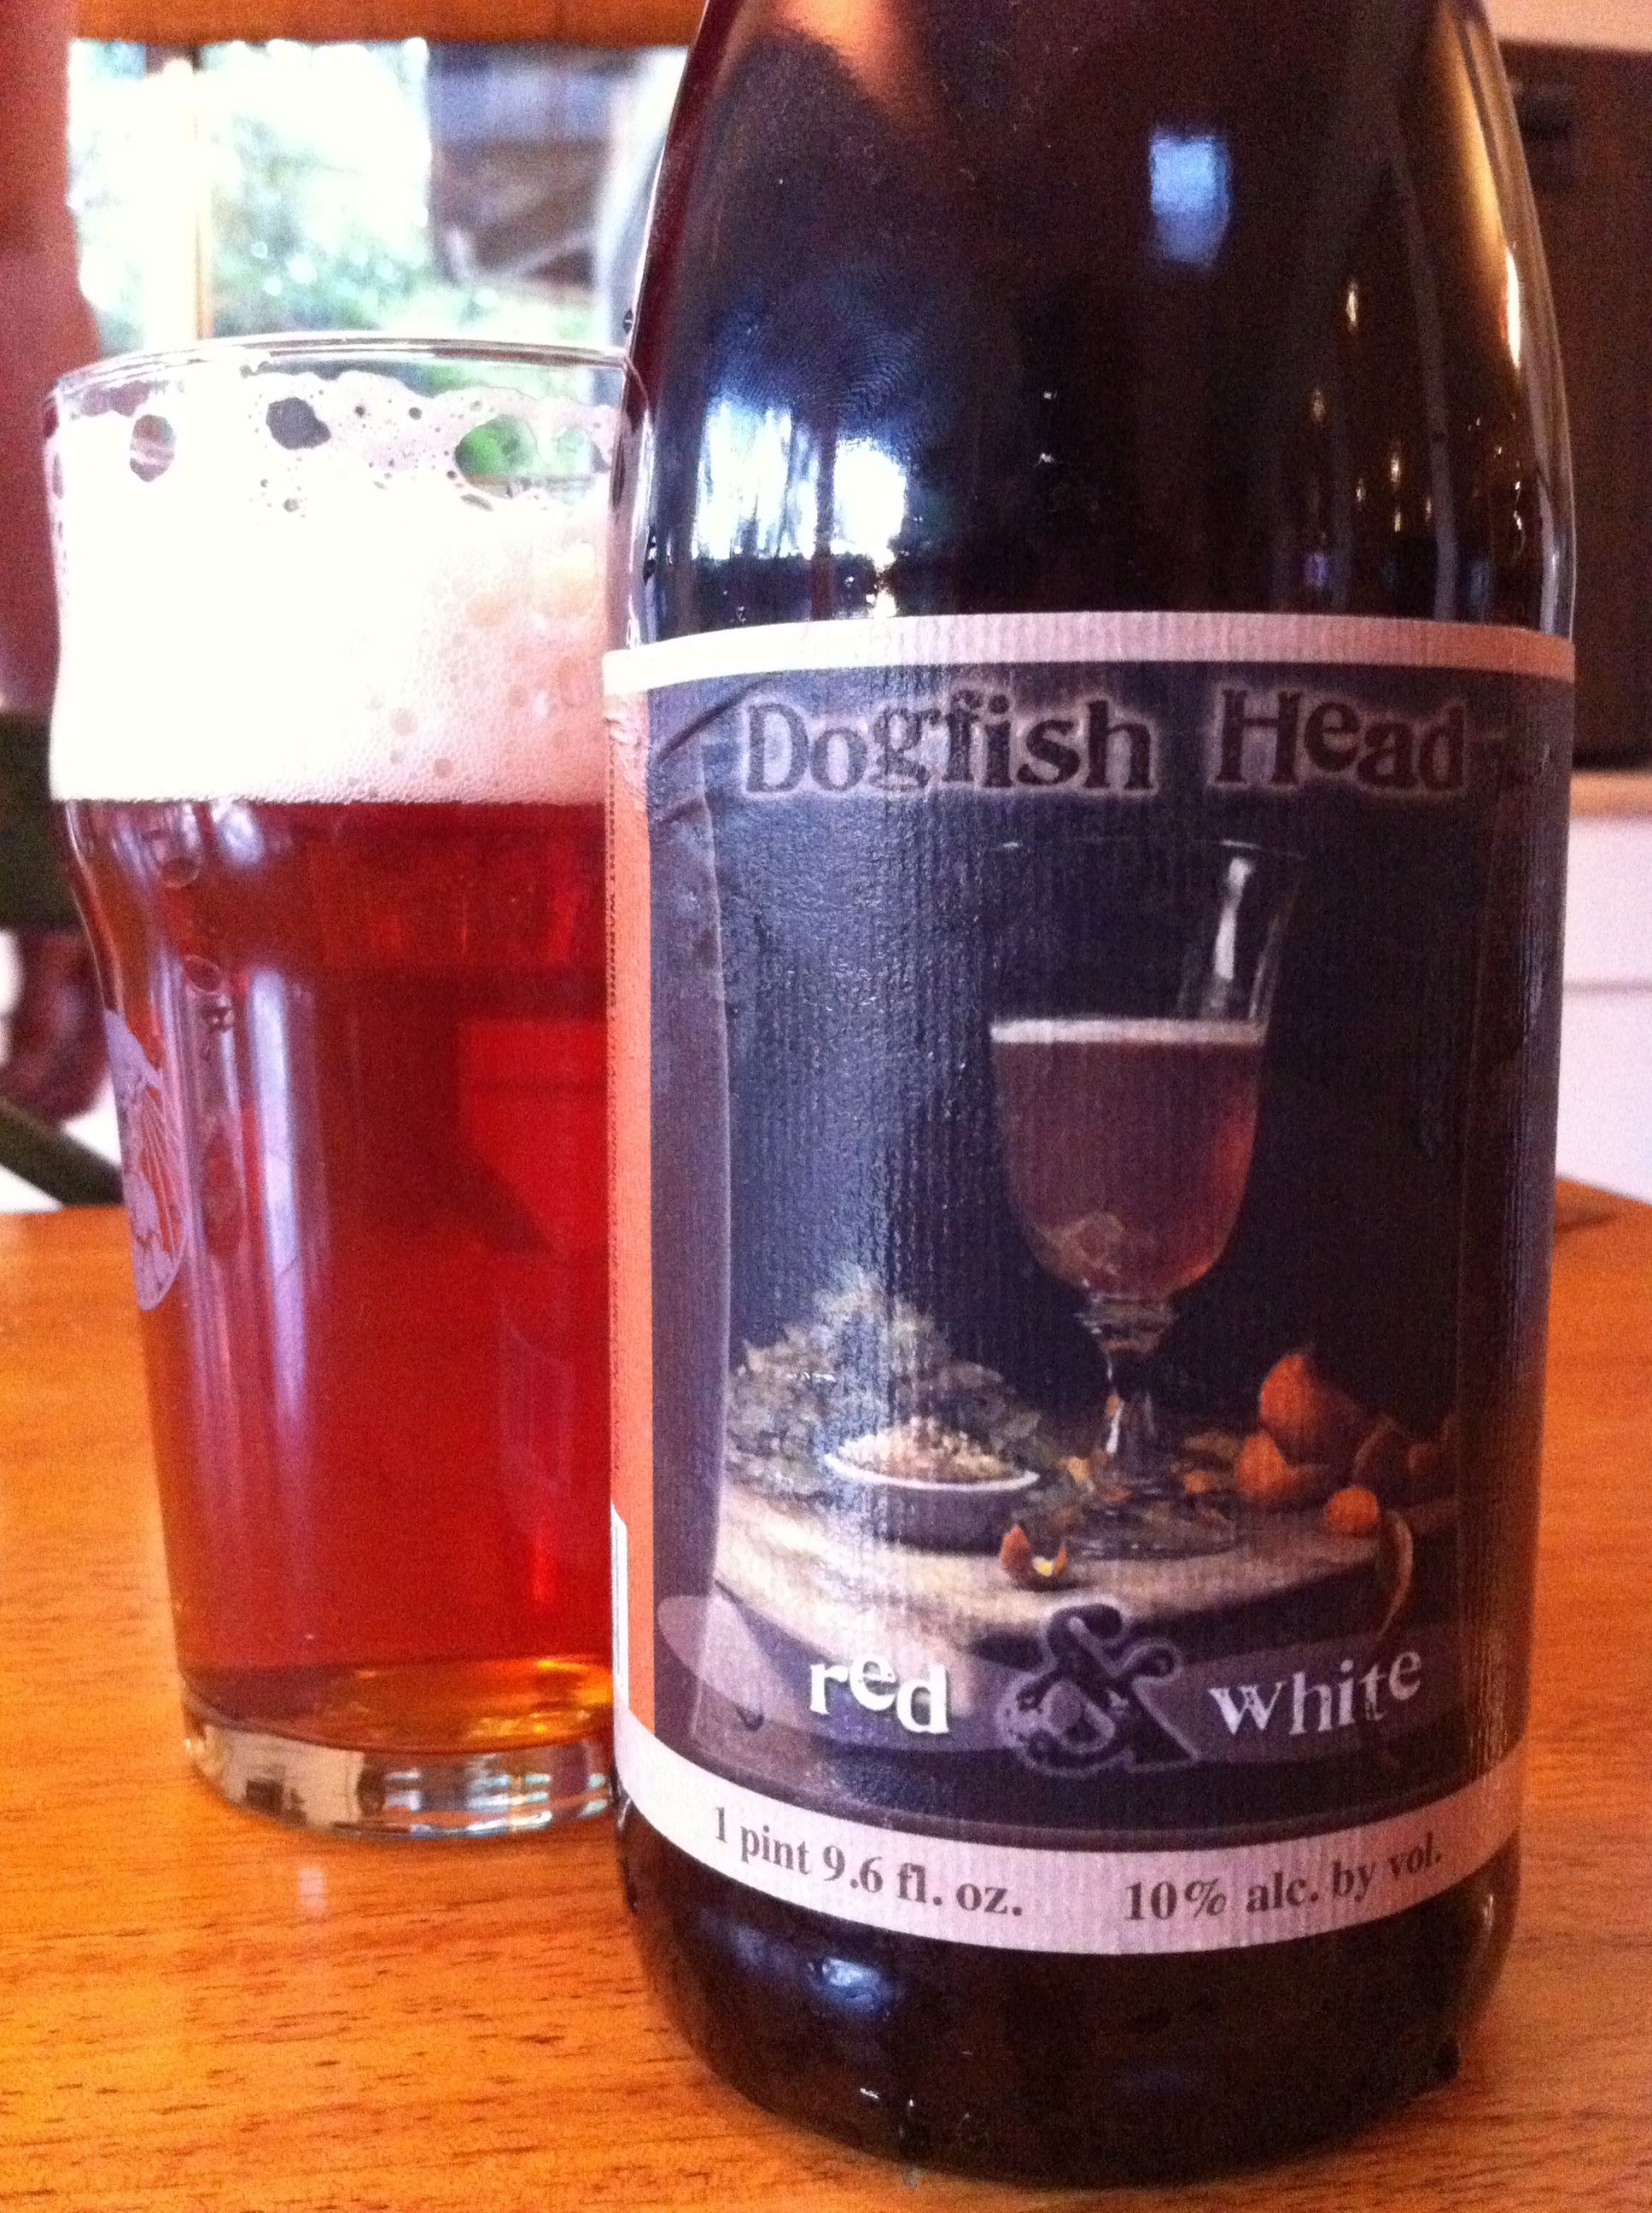 Red White By Dogfish Head Craft Brewery Craft Beer Beer Cellar Beer 101